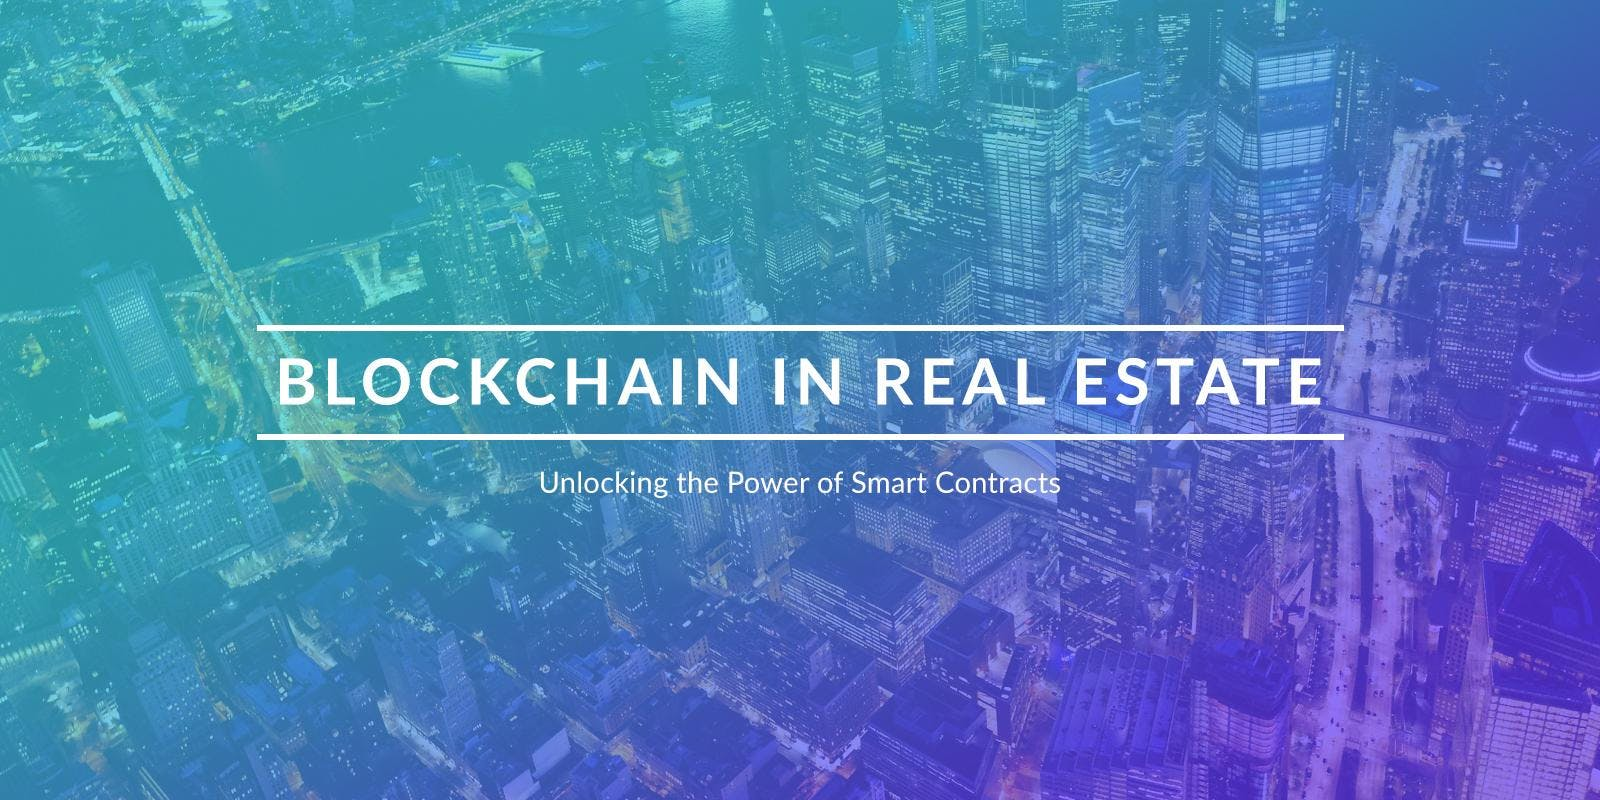 Blockchain in Real Estate: Unlocking the Power of Smart Contracts